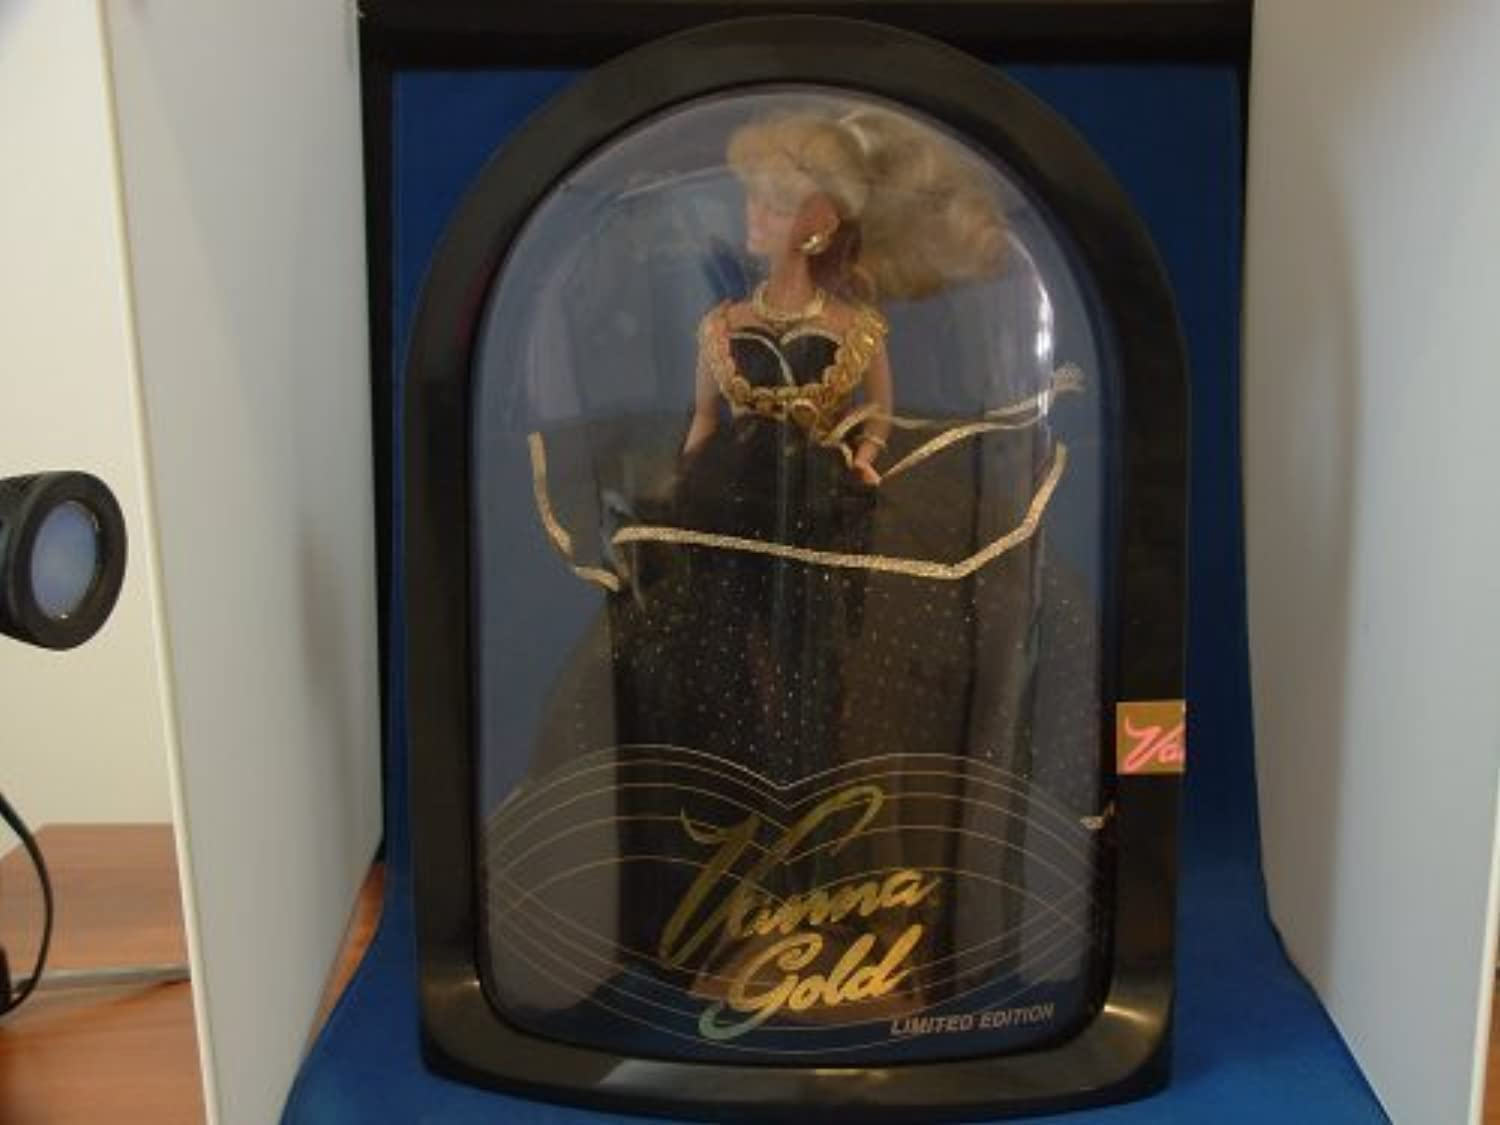 Vanna gold Limited Edition Doll by Vanna White by Vanna White